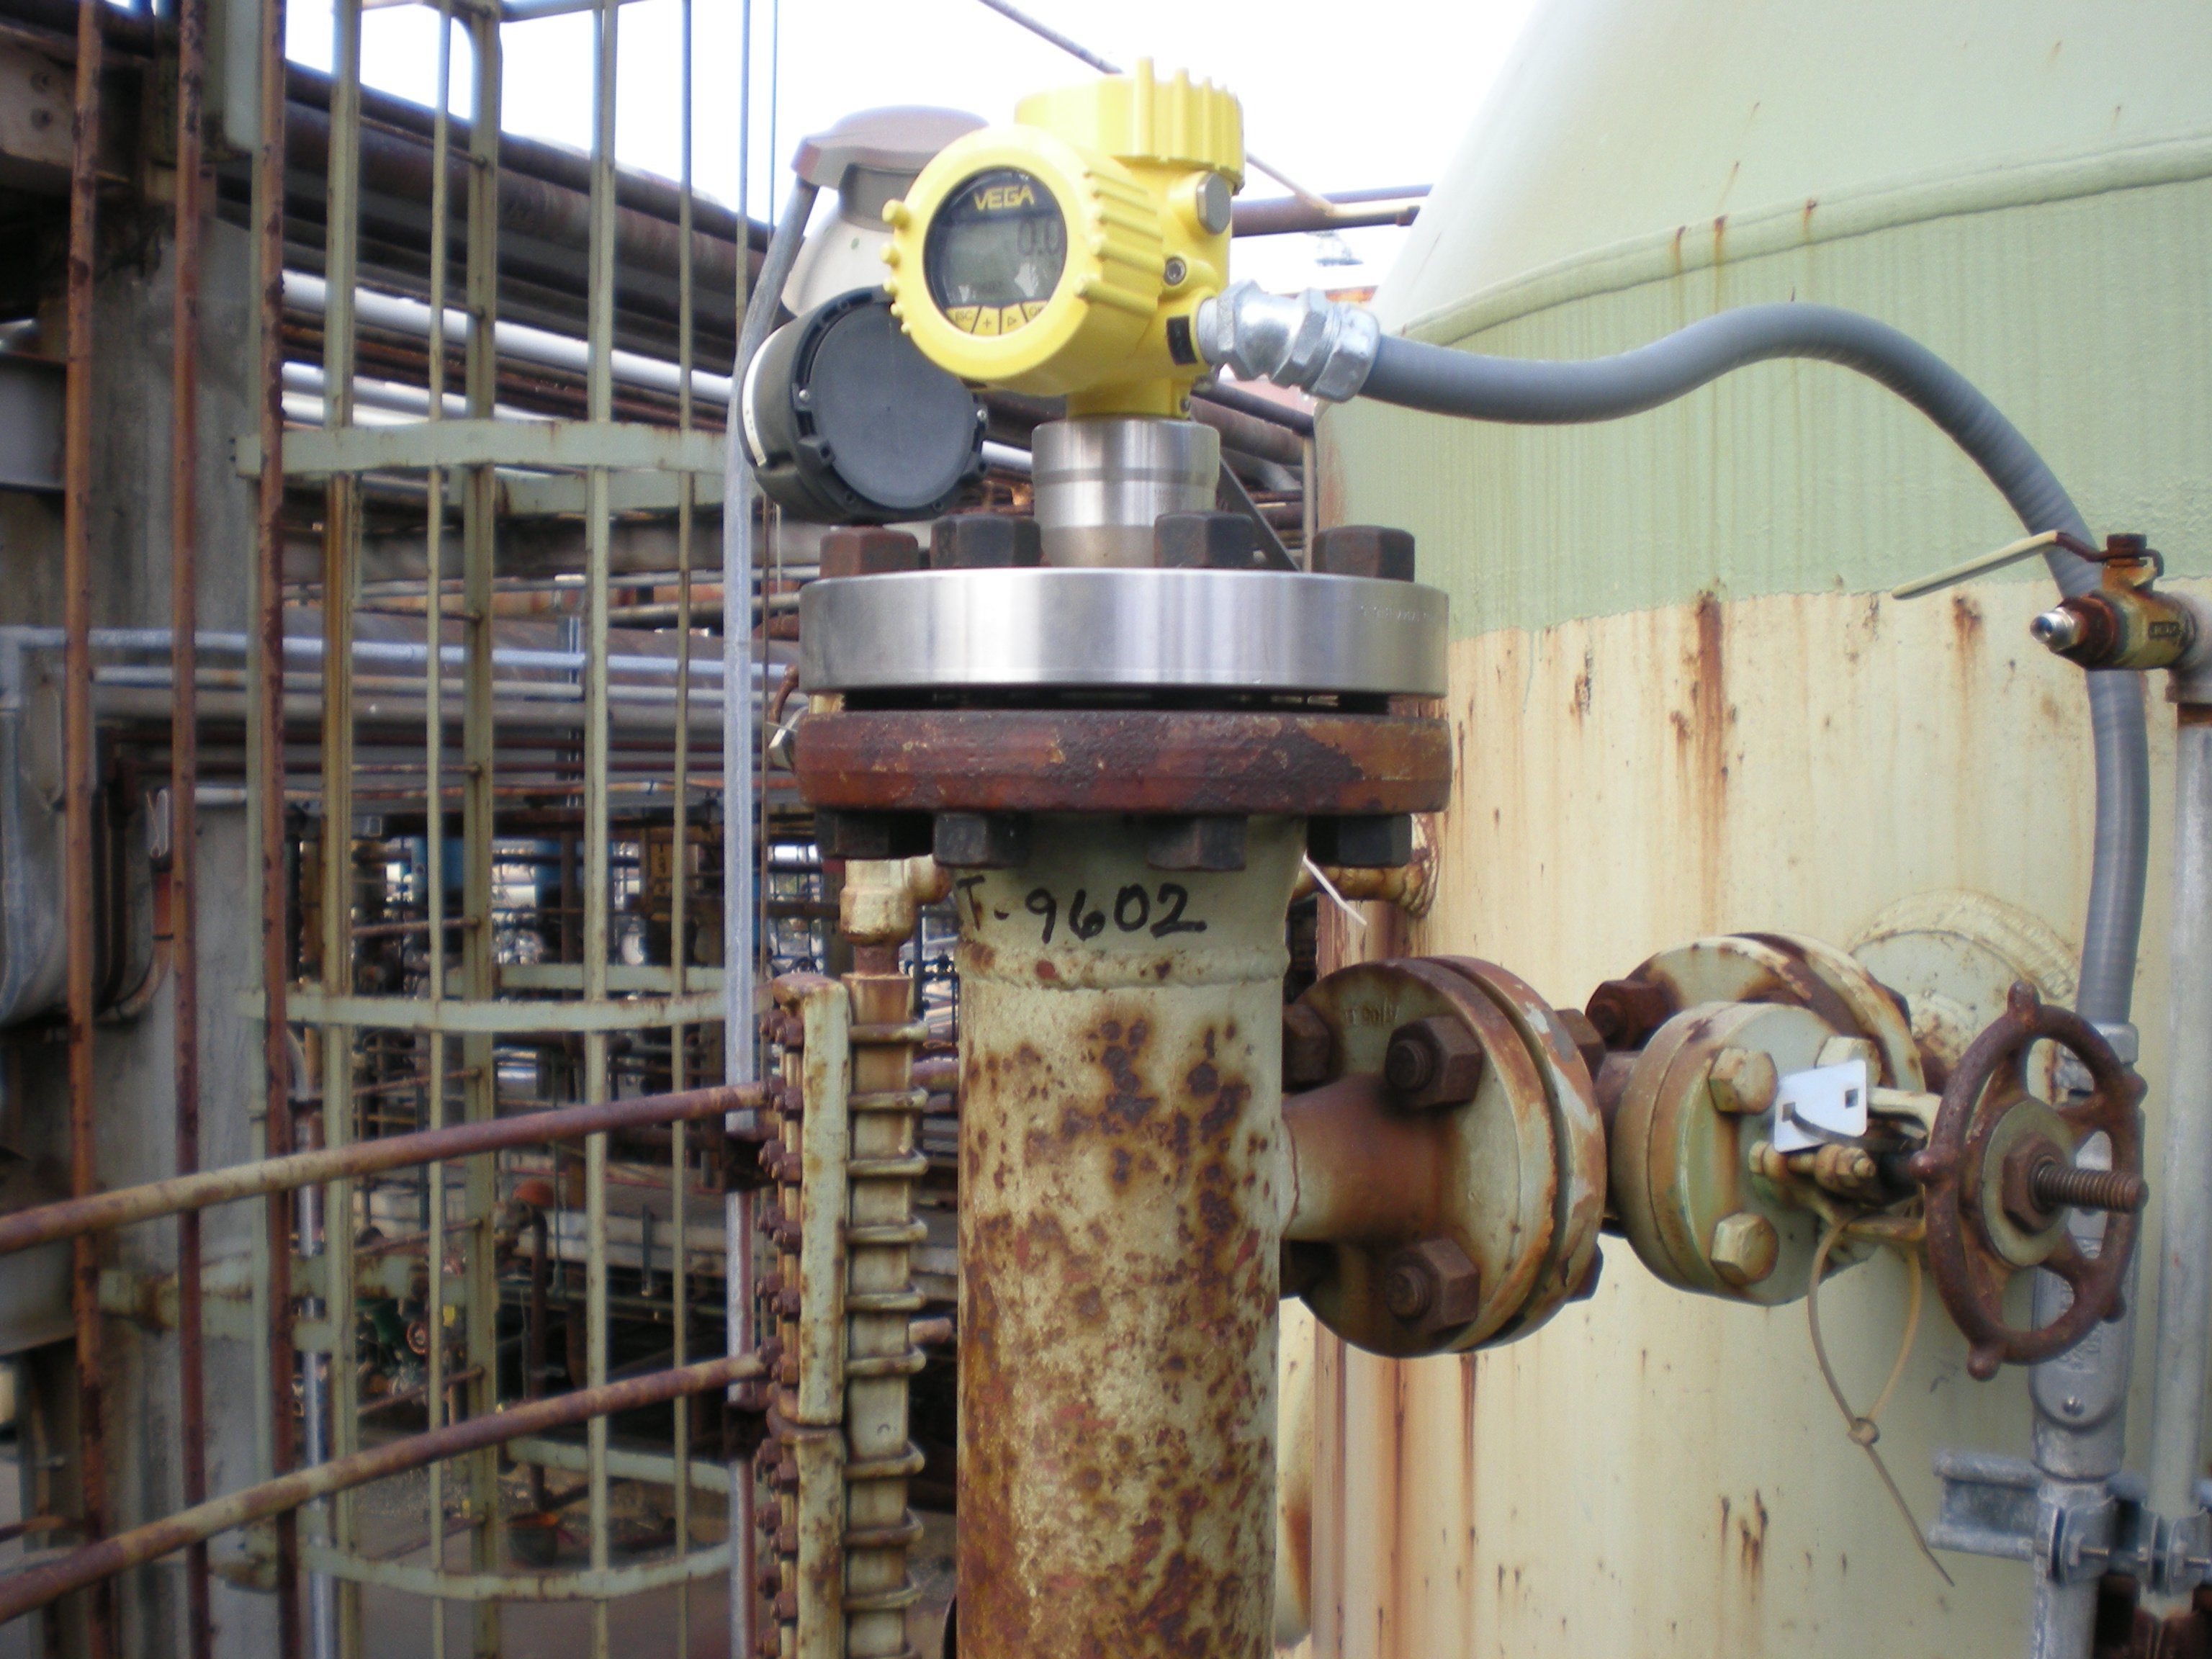 A VEGAFLEX 81 guided wave radar sensor is retrofitted in a displacer cage for an electronic level measurement.